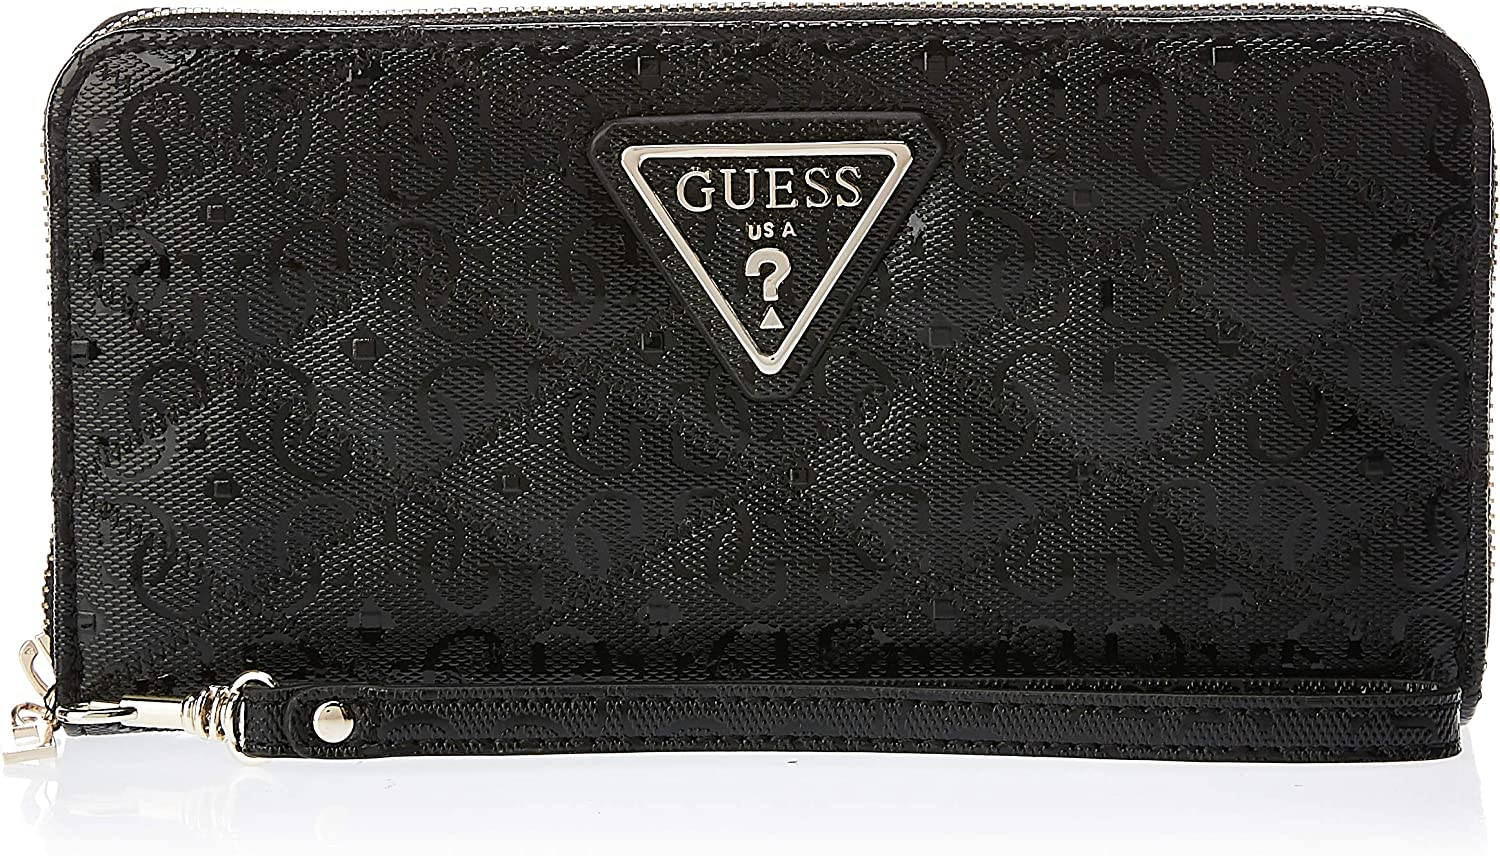 Guess Astrid SLG Large Zip Around Black